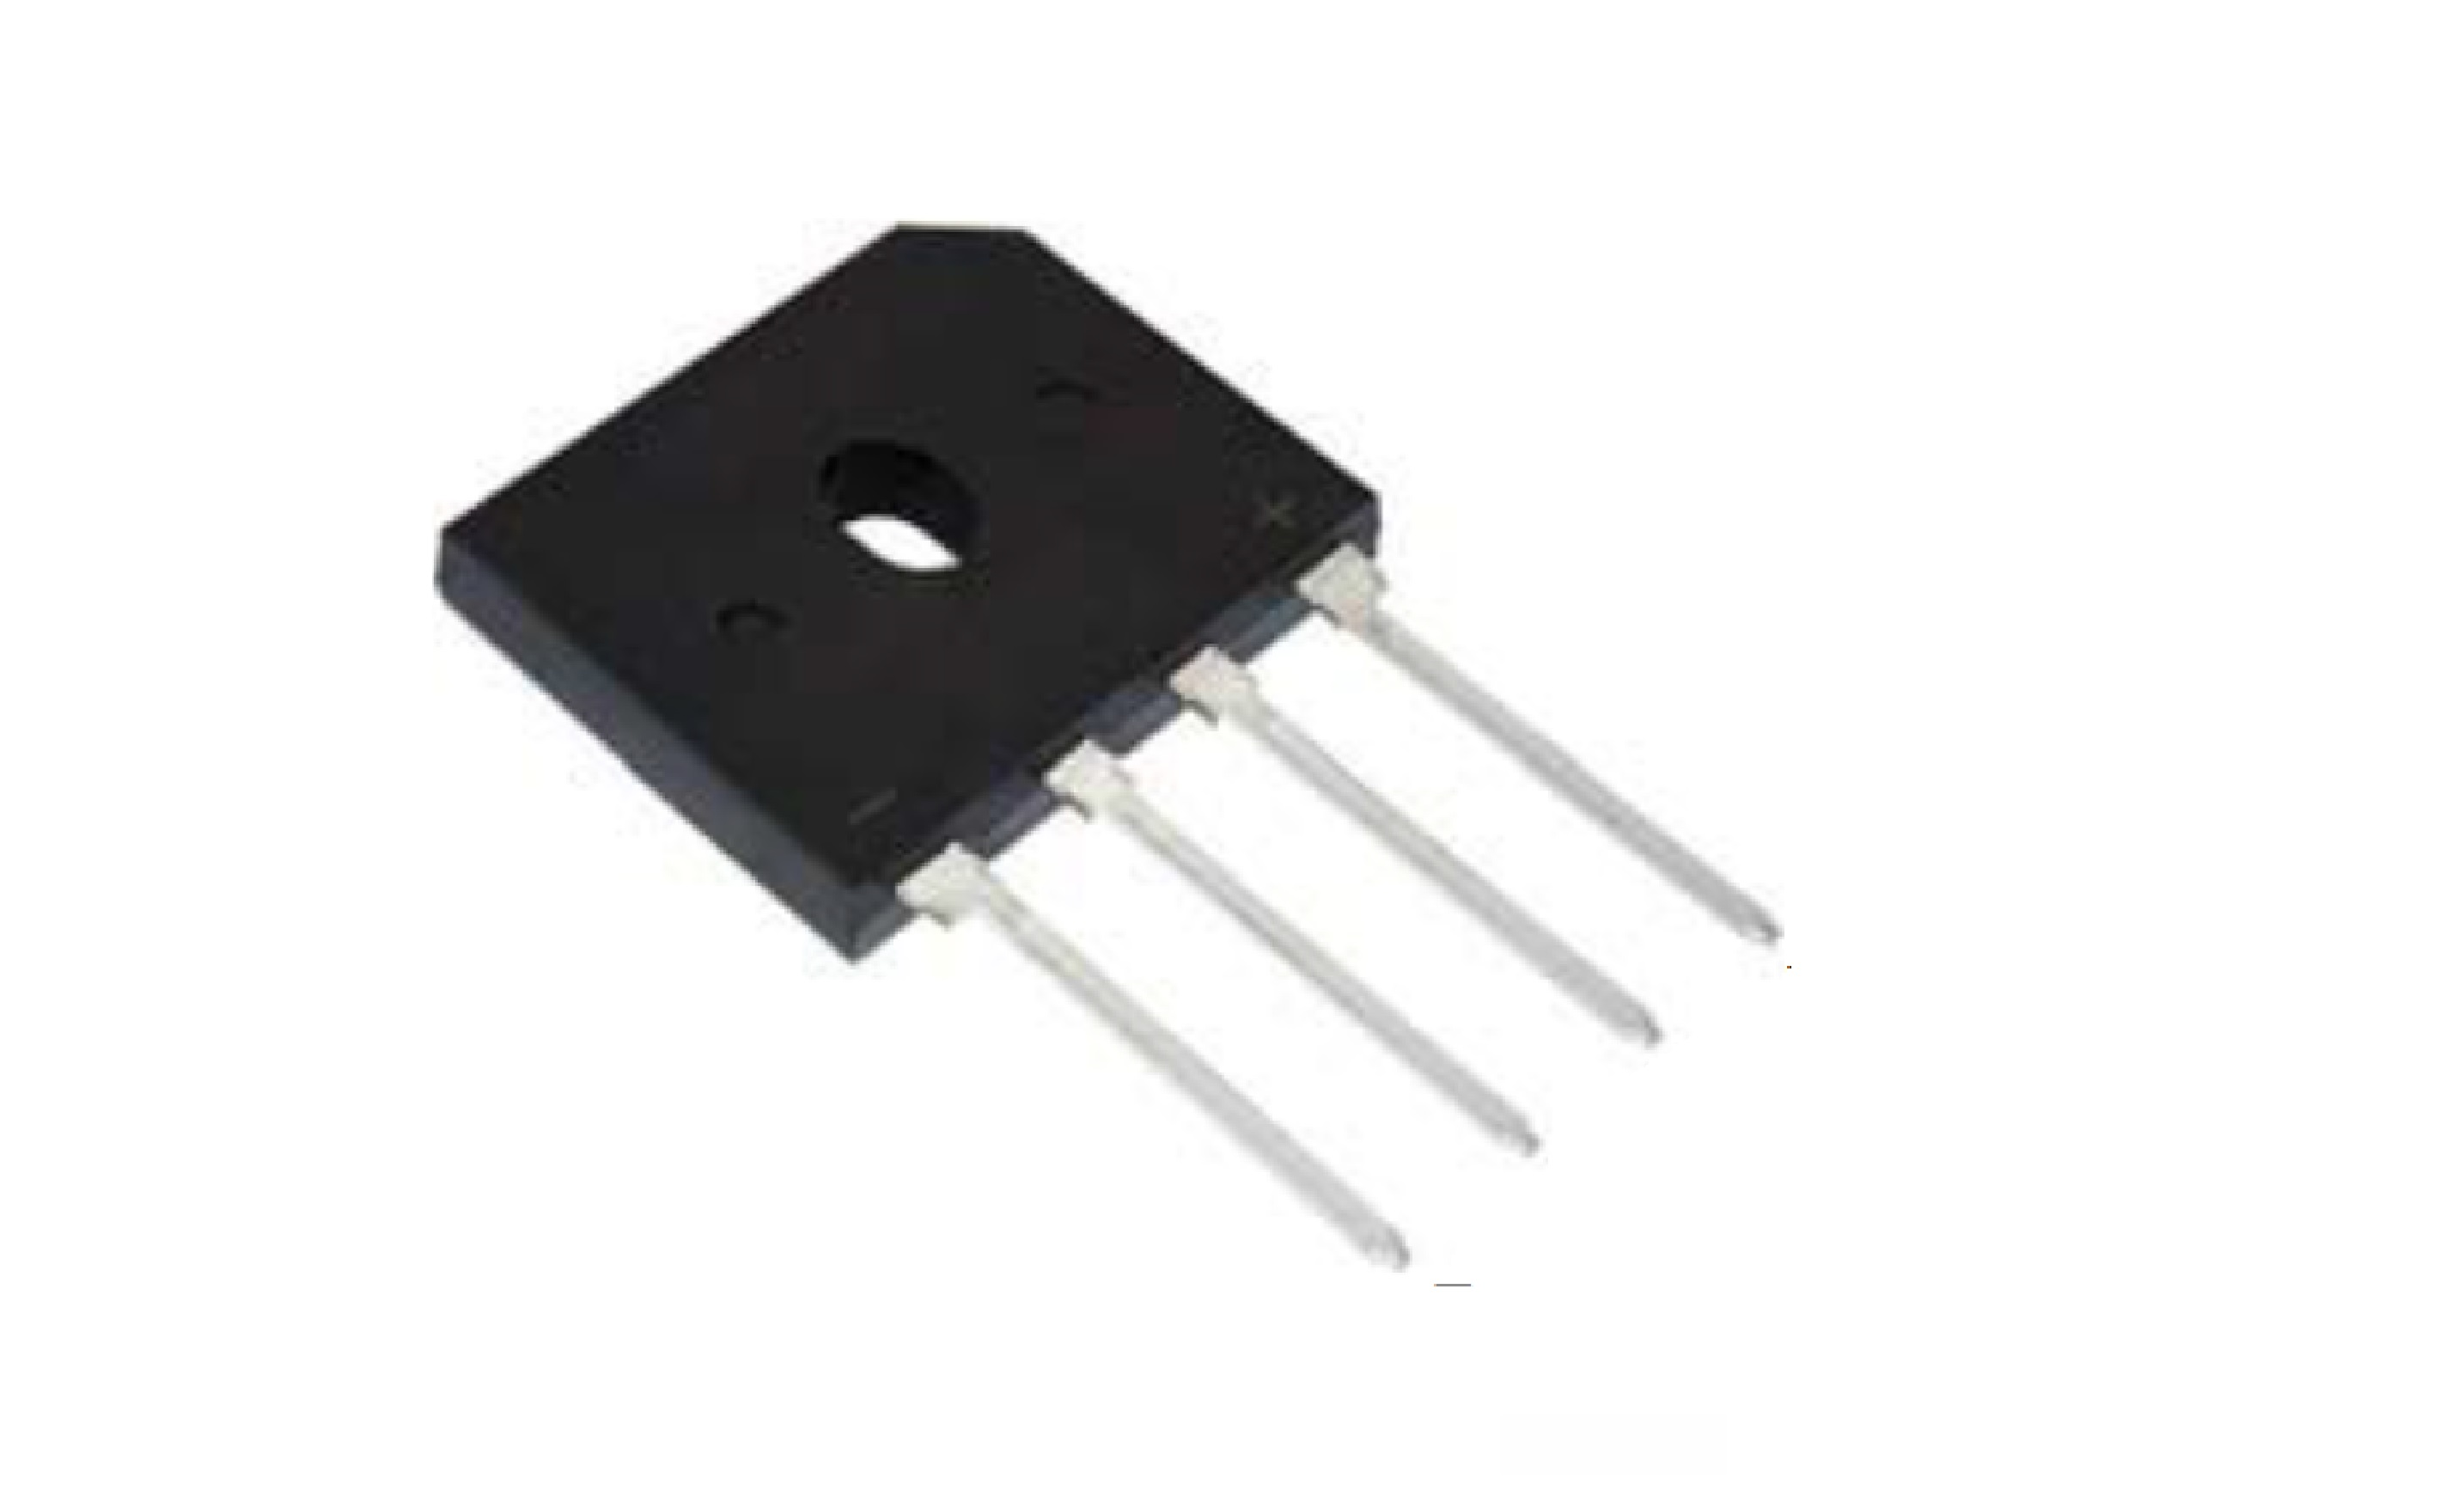 Fairchild Semi Taitron Internet Super Store Tiss The Two Diodes Are Part Of 37 A Bridge Rectifier Used In Circuit Manufacturer Packing Method Tube Pack Status Full 20 Rohs N Description Glass Passivated Rectifiers60a 1000vin